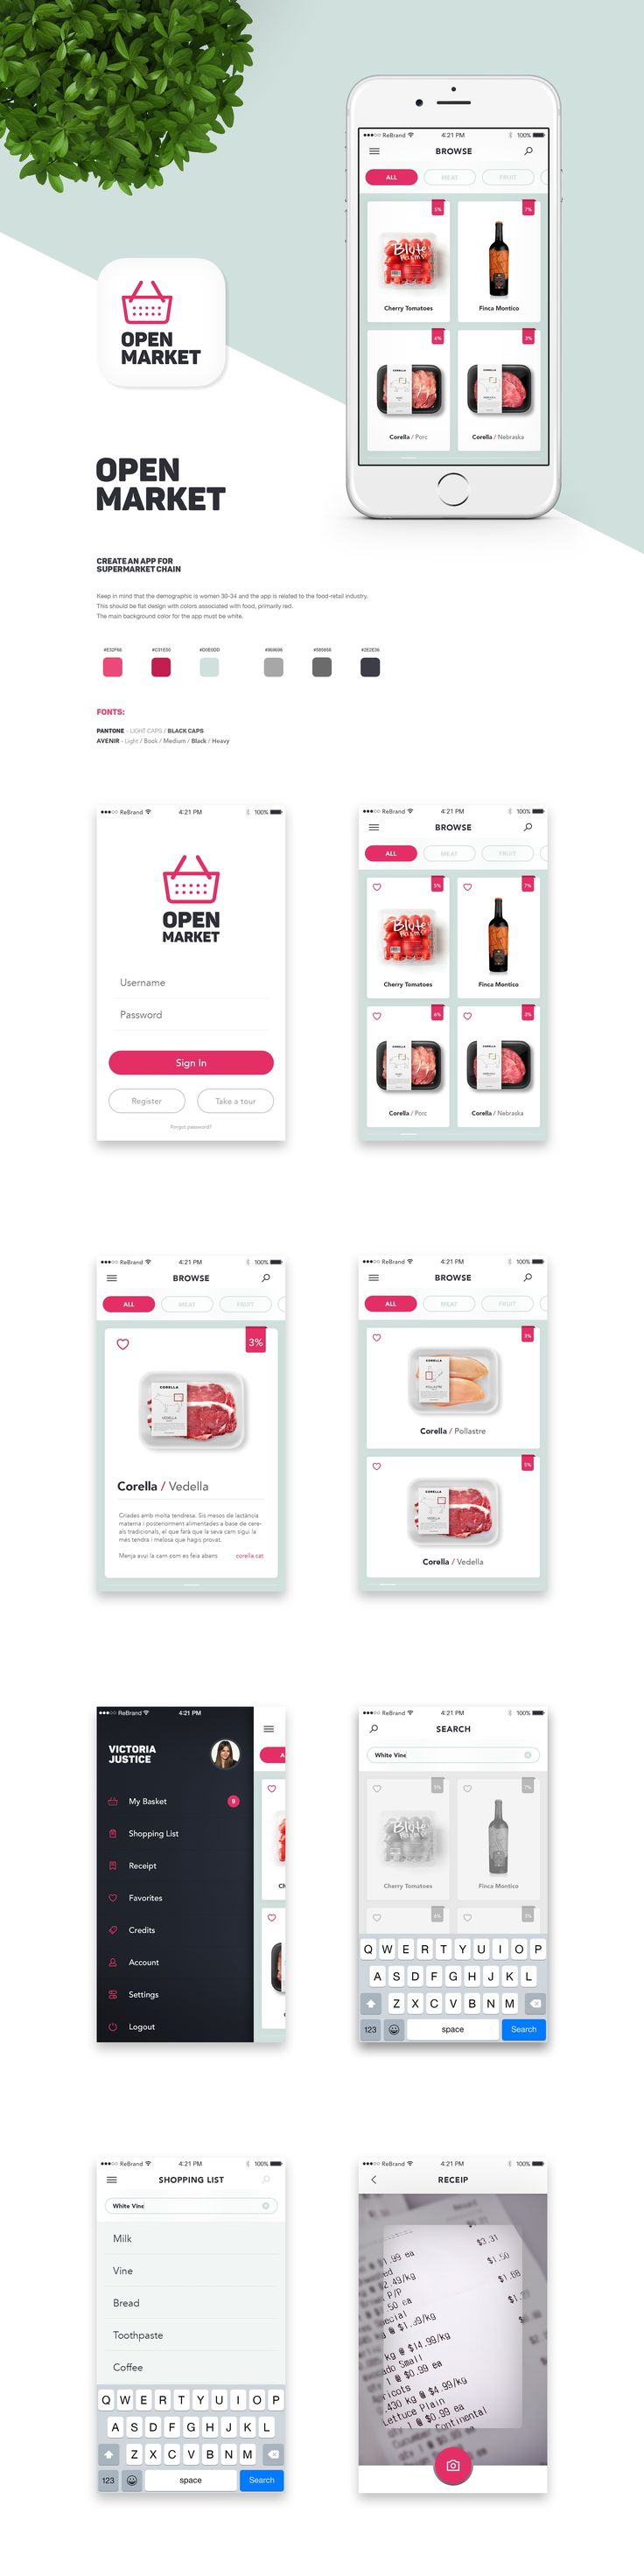 Designs | Fun flat app for a supermarket. | App design contest